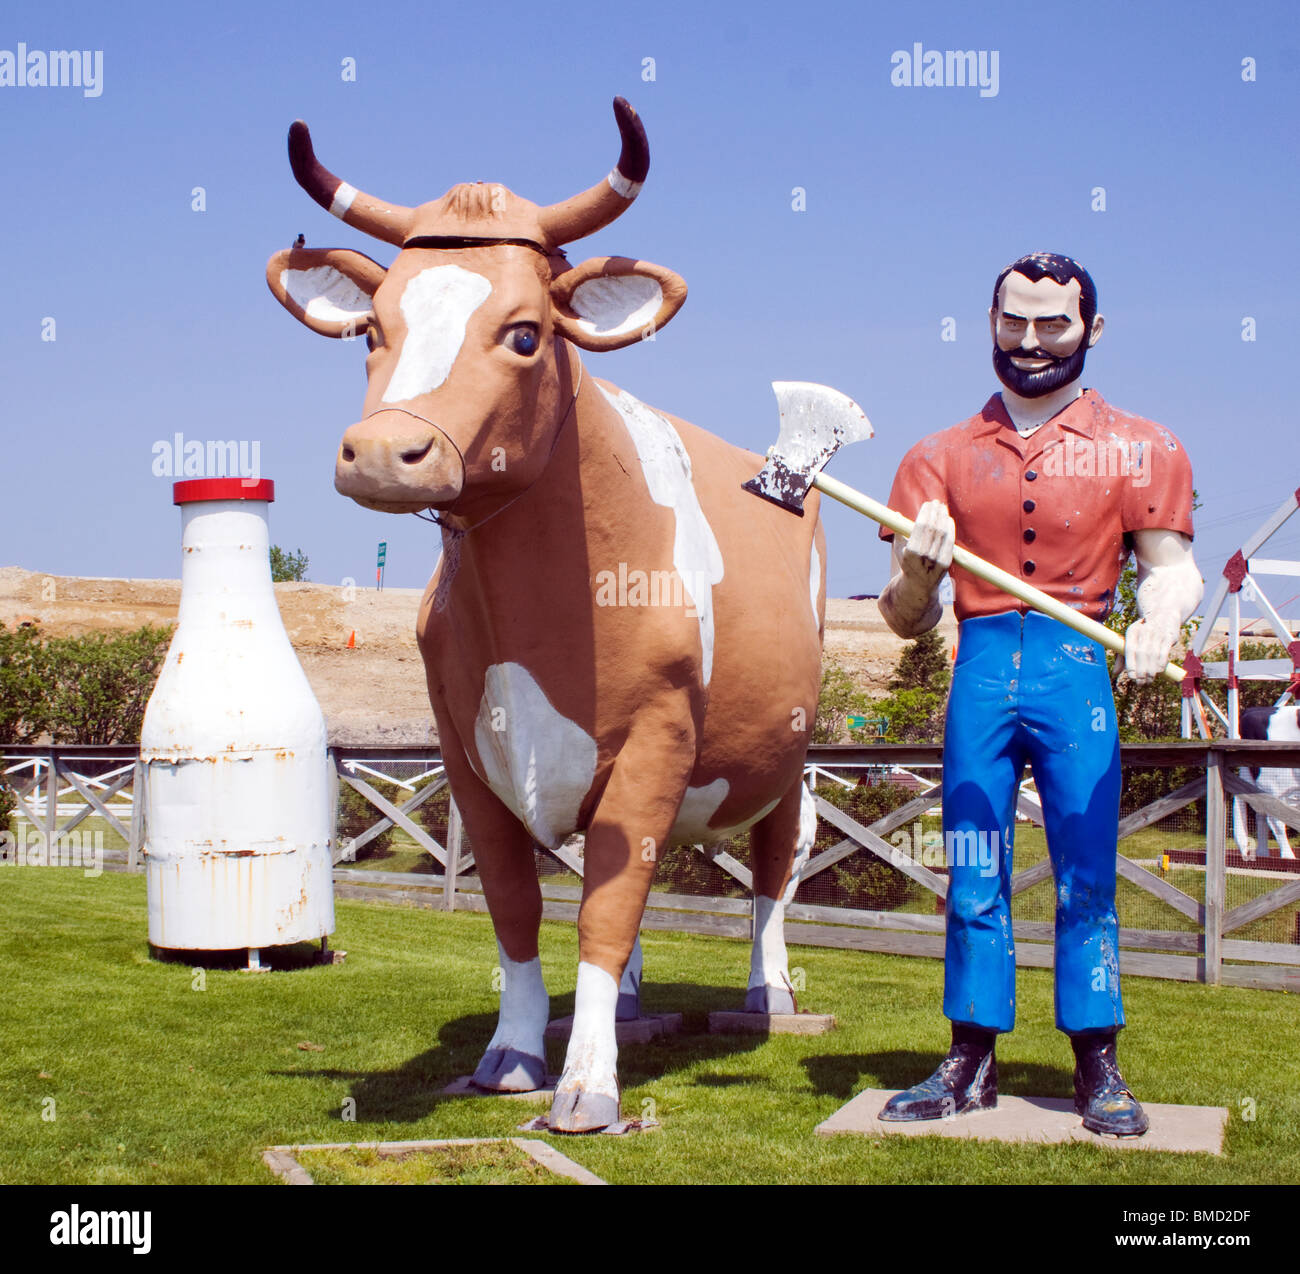 MUffler Man and Cow at a farm in Libertyville Illinois - Stock Image